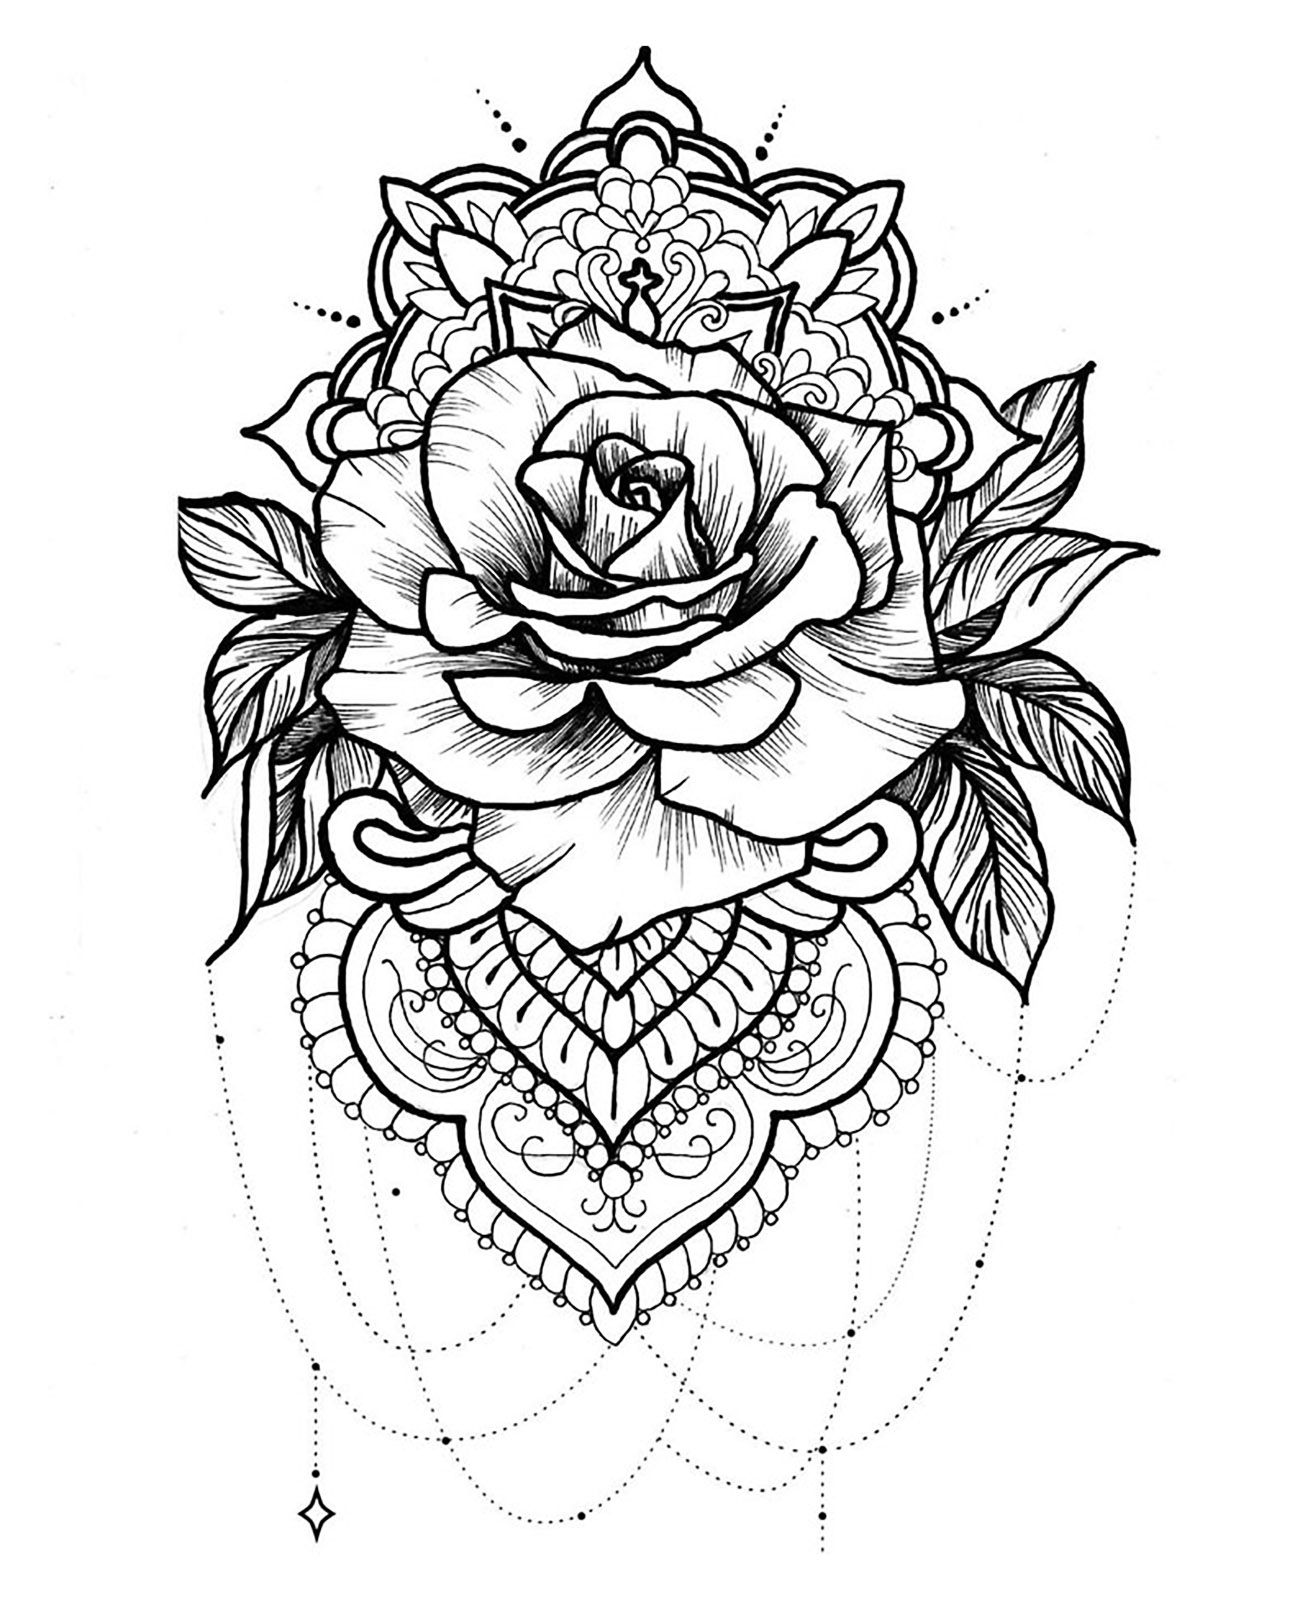 Here Are Difficult Mandalas Coloring Pages For Adults To